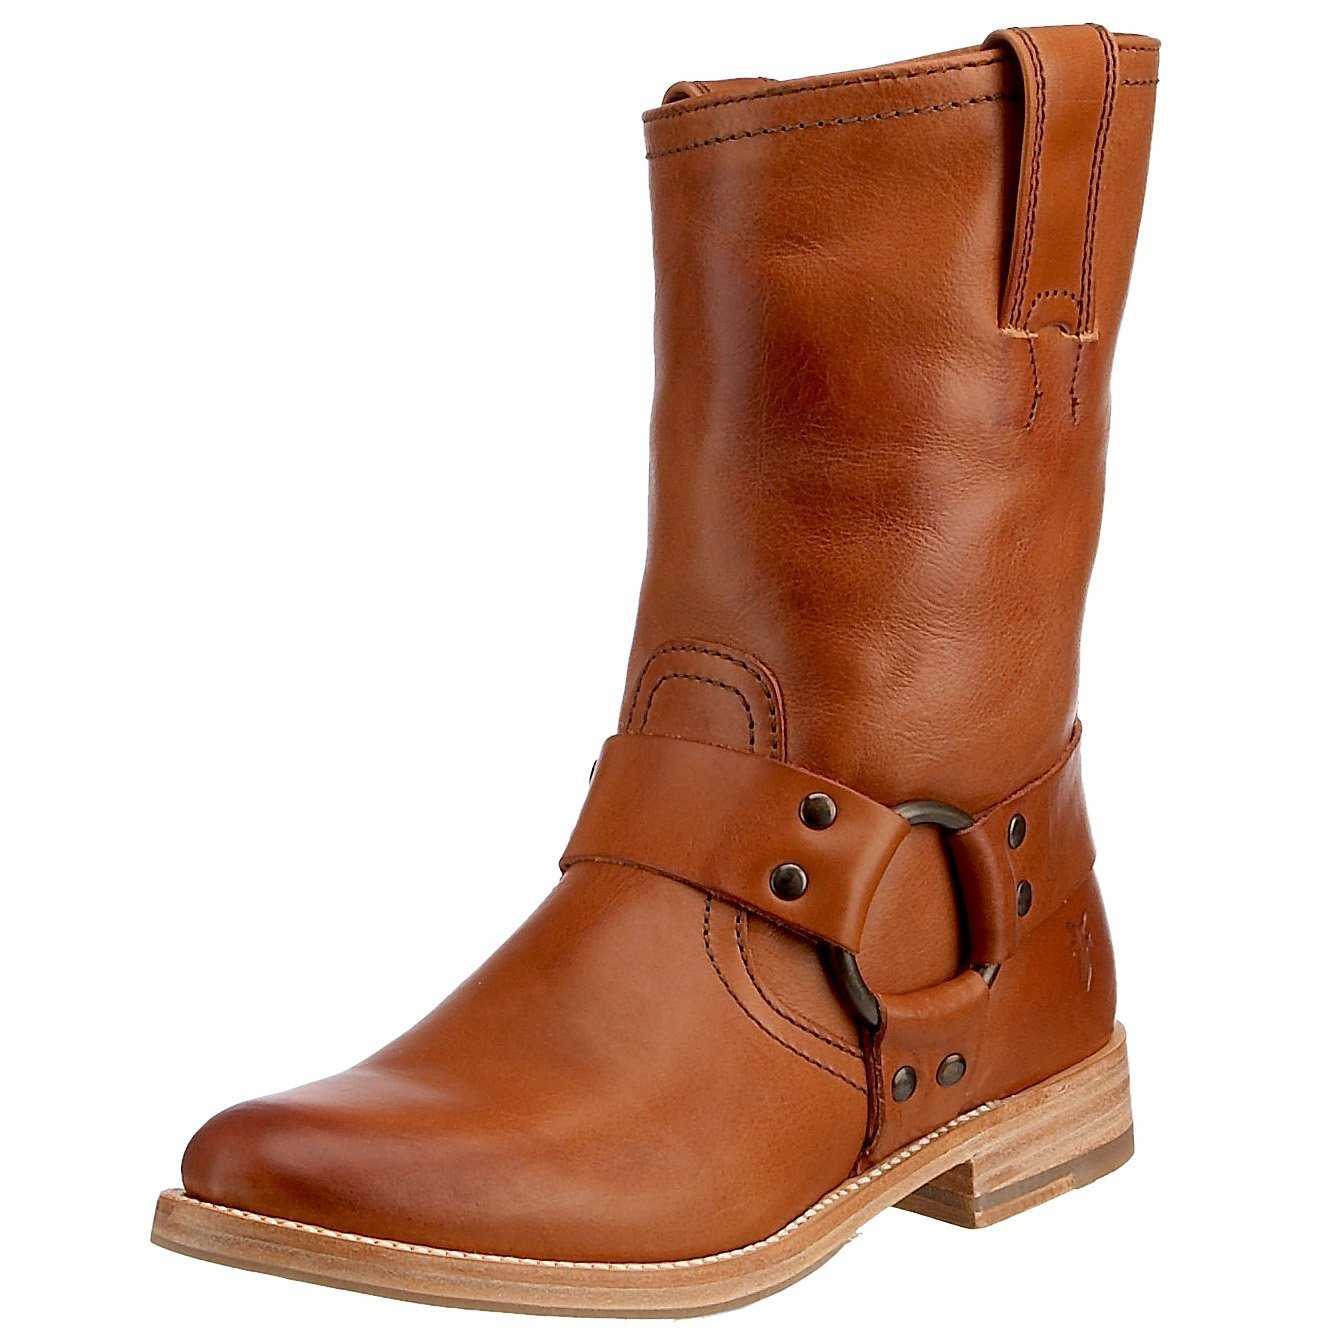 FRYE Women's Maxine Shortie Boot - Free Overnight Shipping & Return Shipping: Endless.com from endless.com